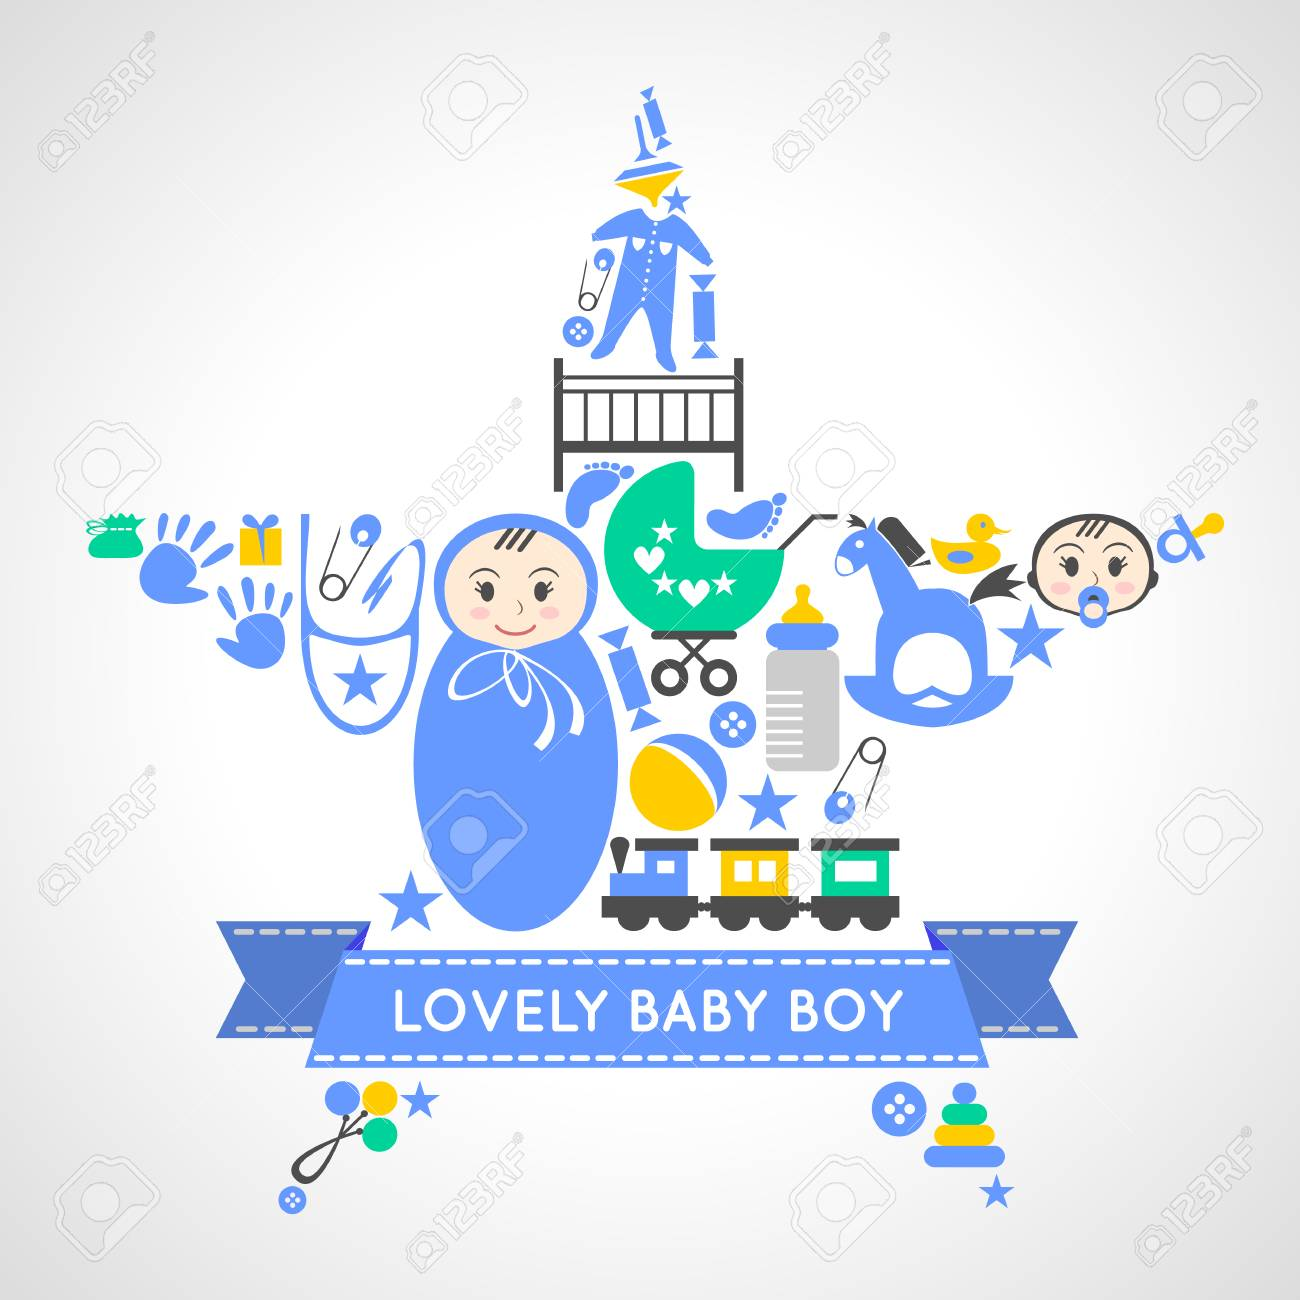 Baby Boy Icons Collection Set In Form Of A Star Newborn Toddler